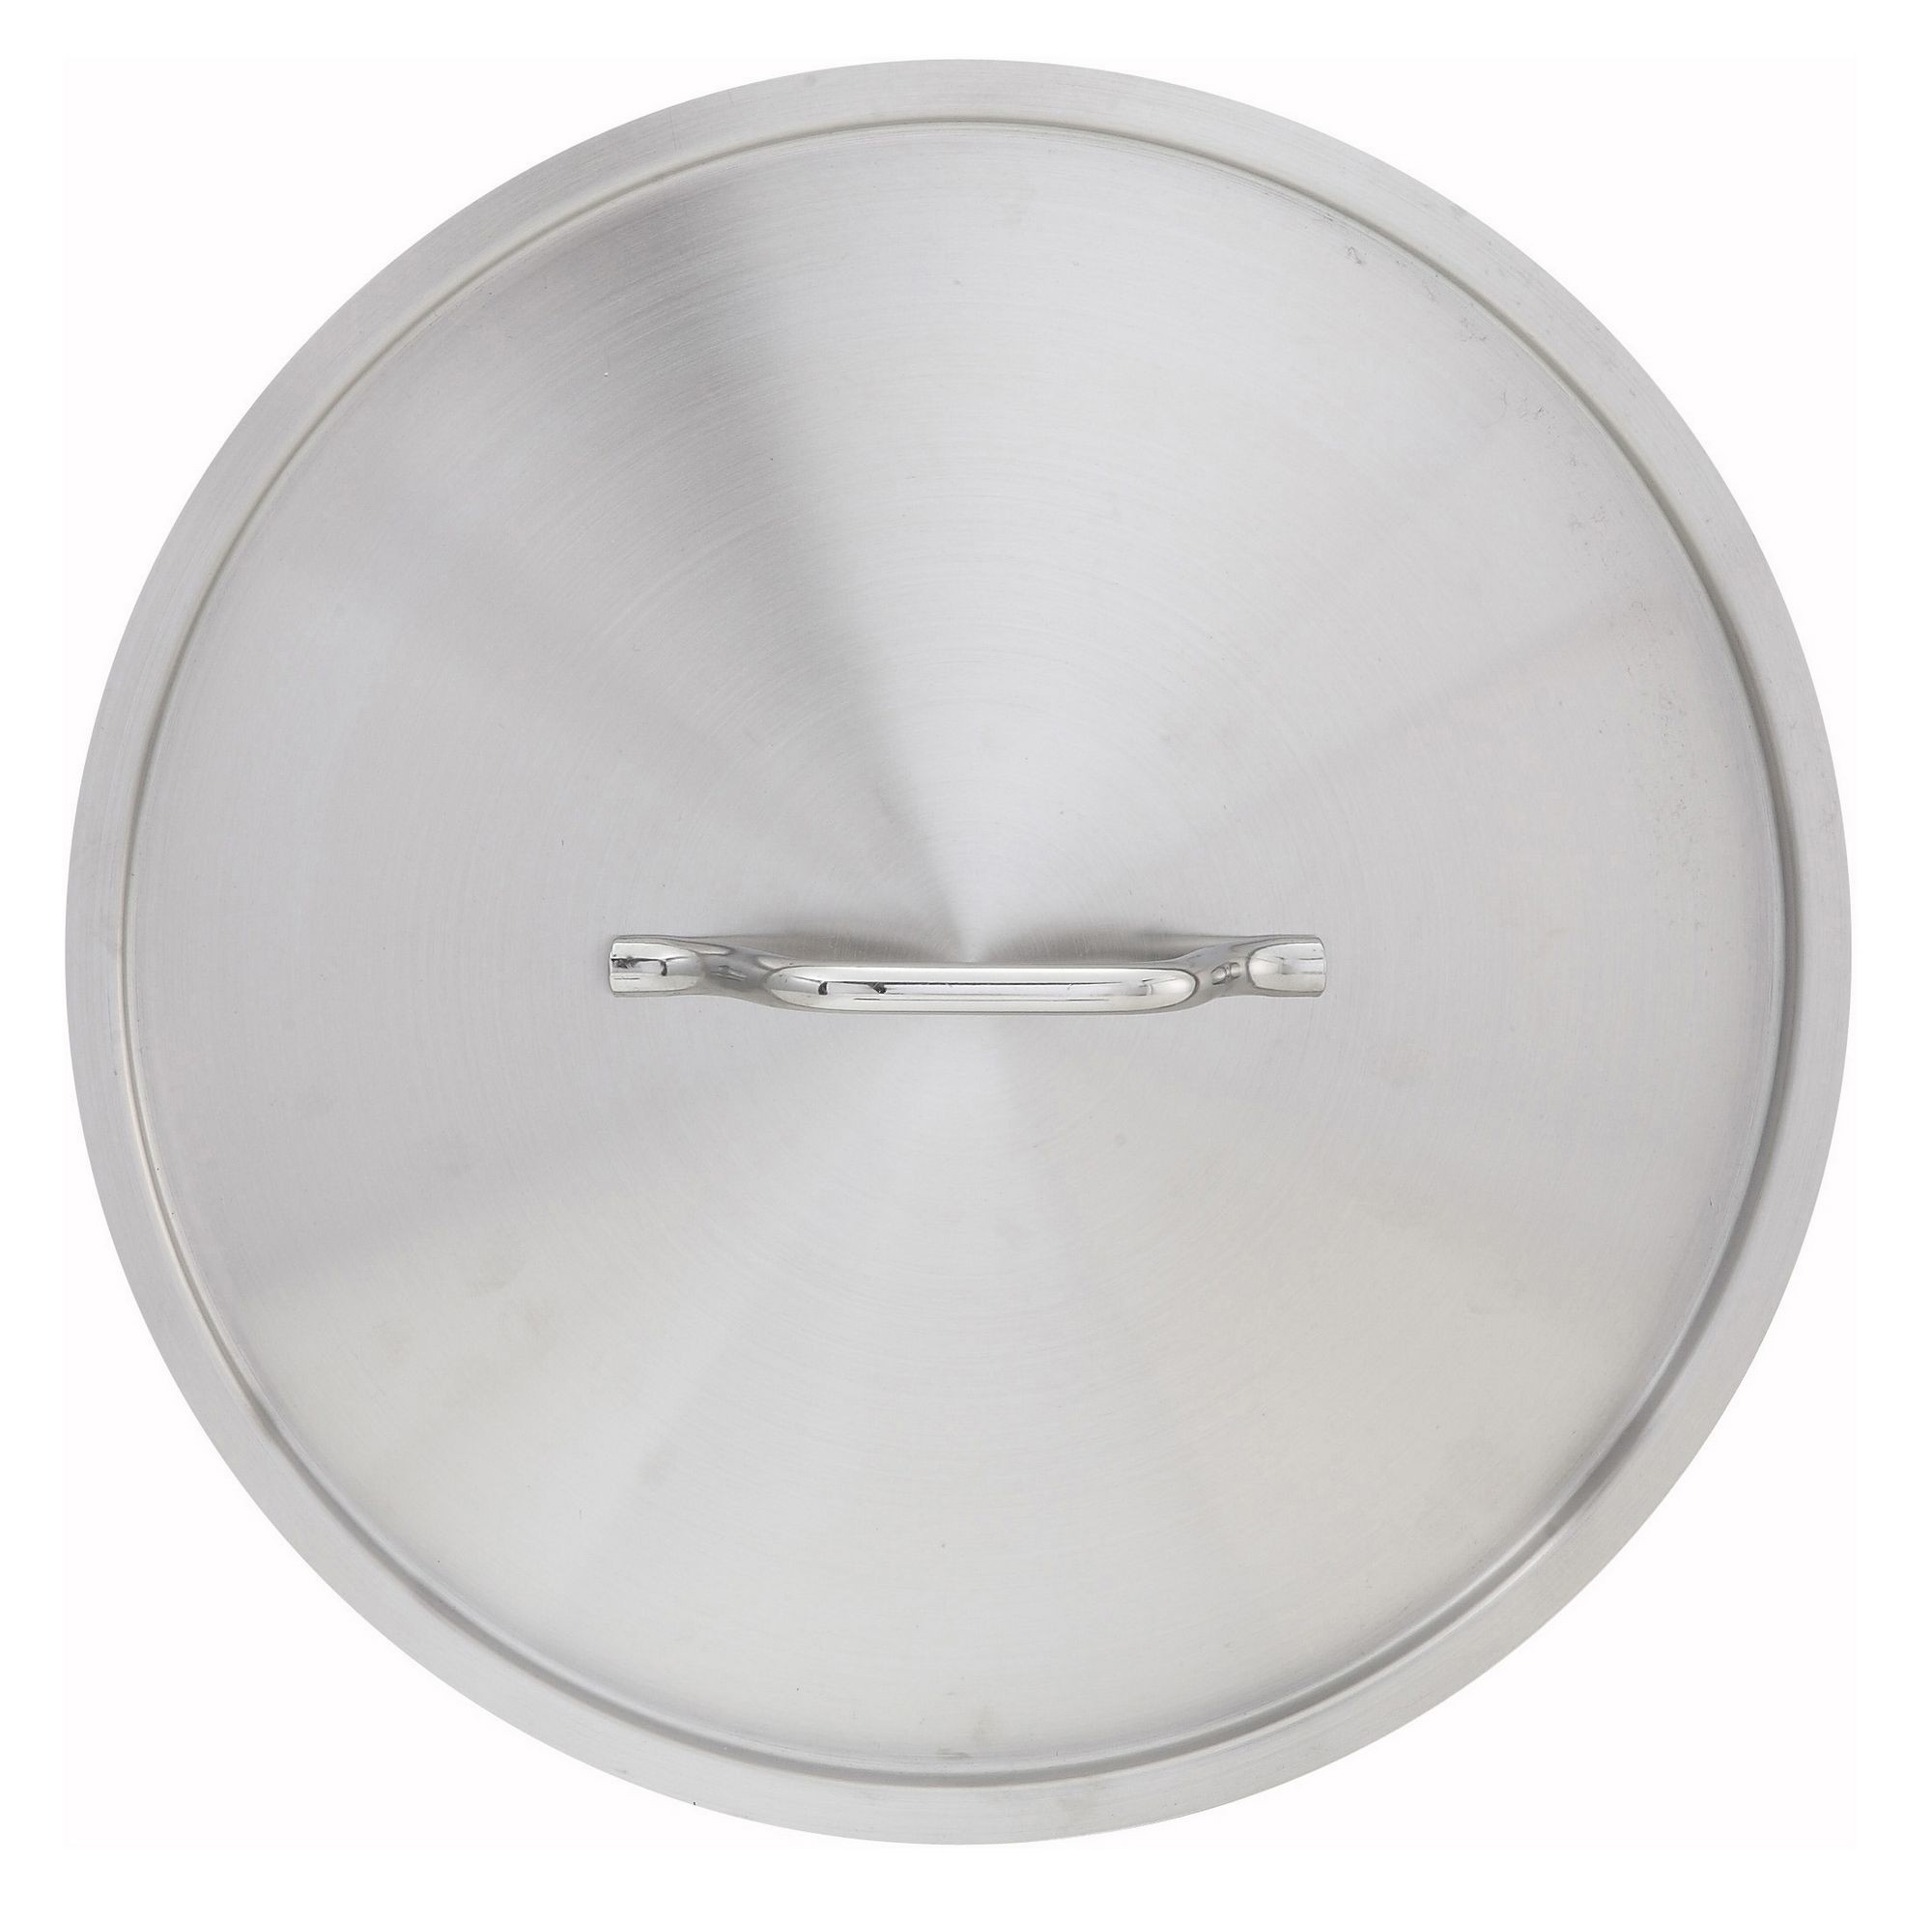 Winco SSTC-80 Stainless Steel Cover for 80 Qt. Stock Pot SST-80